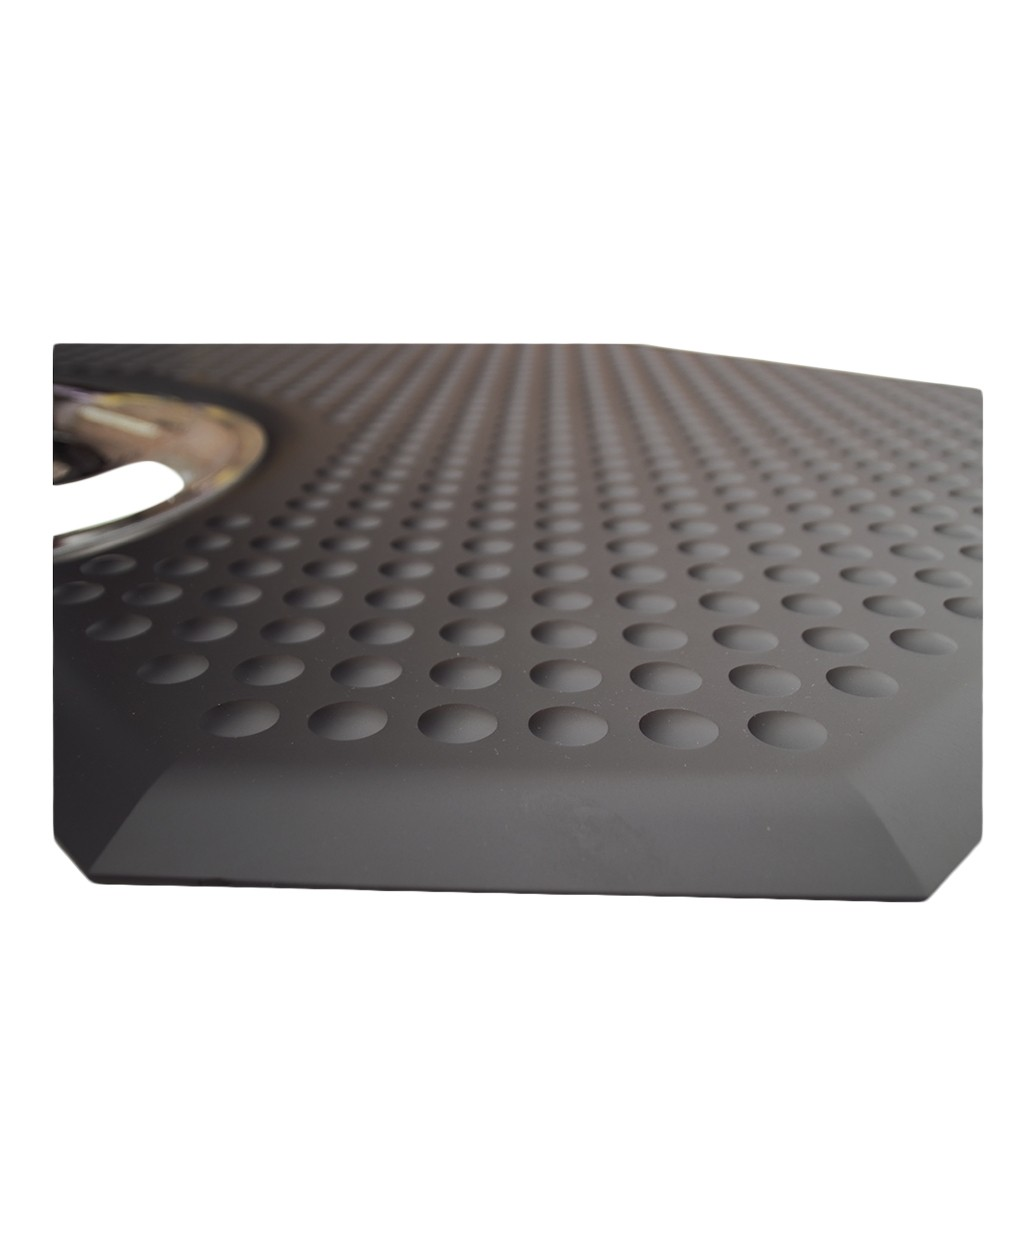 "40"" x 60"" Rhino Phat Footsie Hexagon Salon Mat w/ Round Cut-Out 1"""